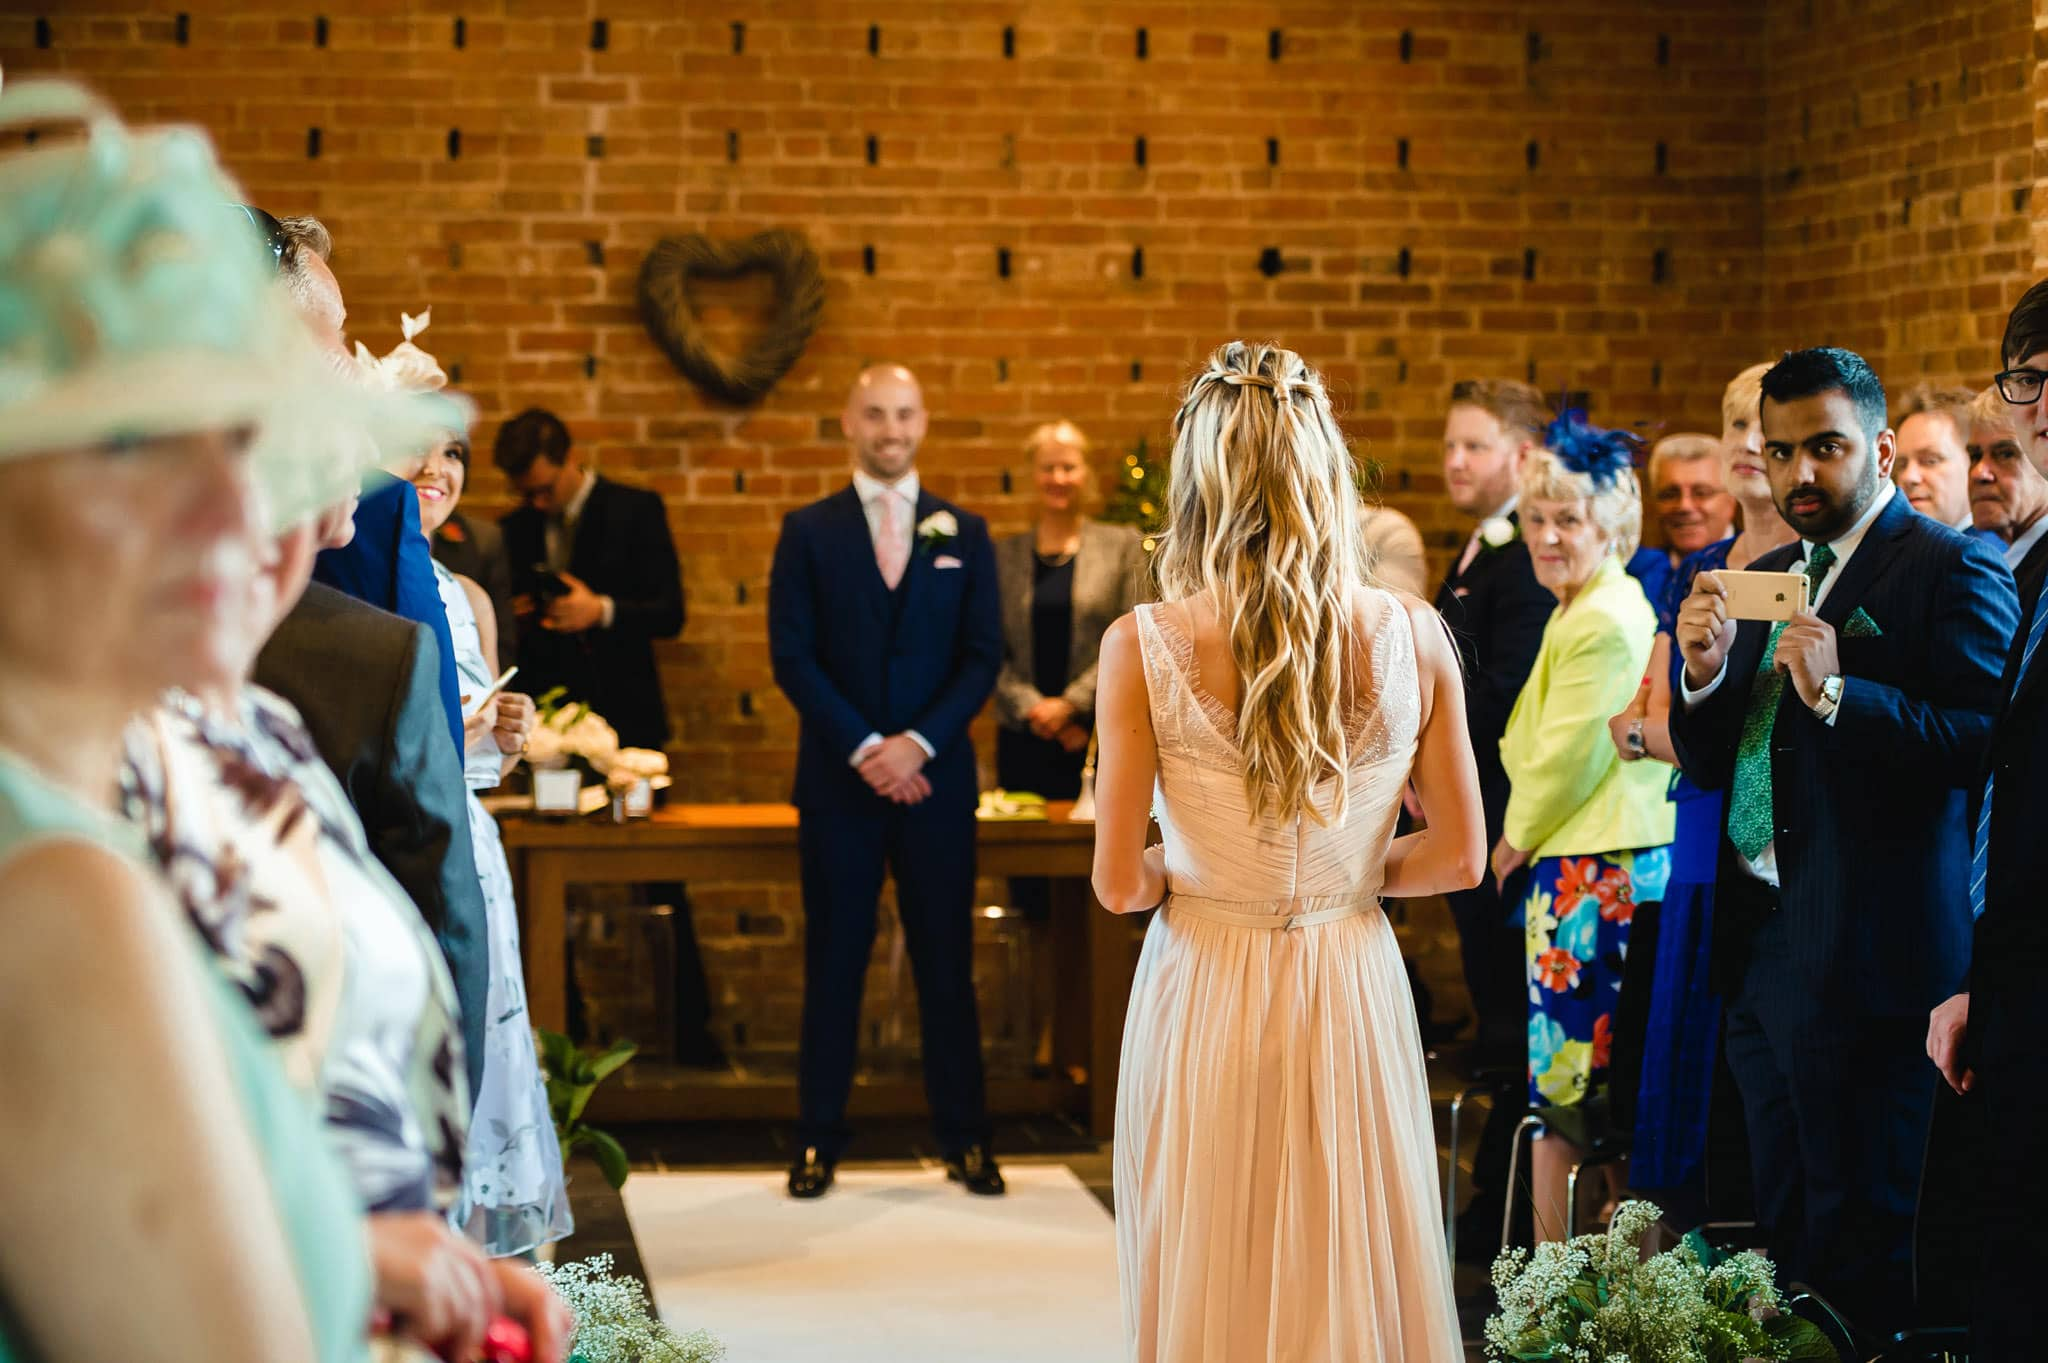 wedding at redhouse barn 69 - Wedding at Redhouse Barn in Stoke Prior, Worcestershire